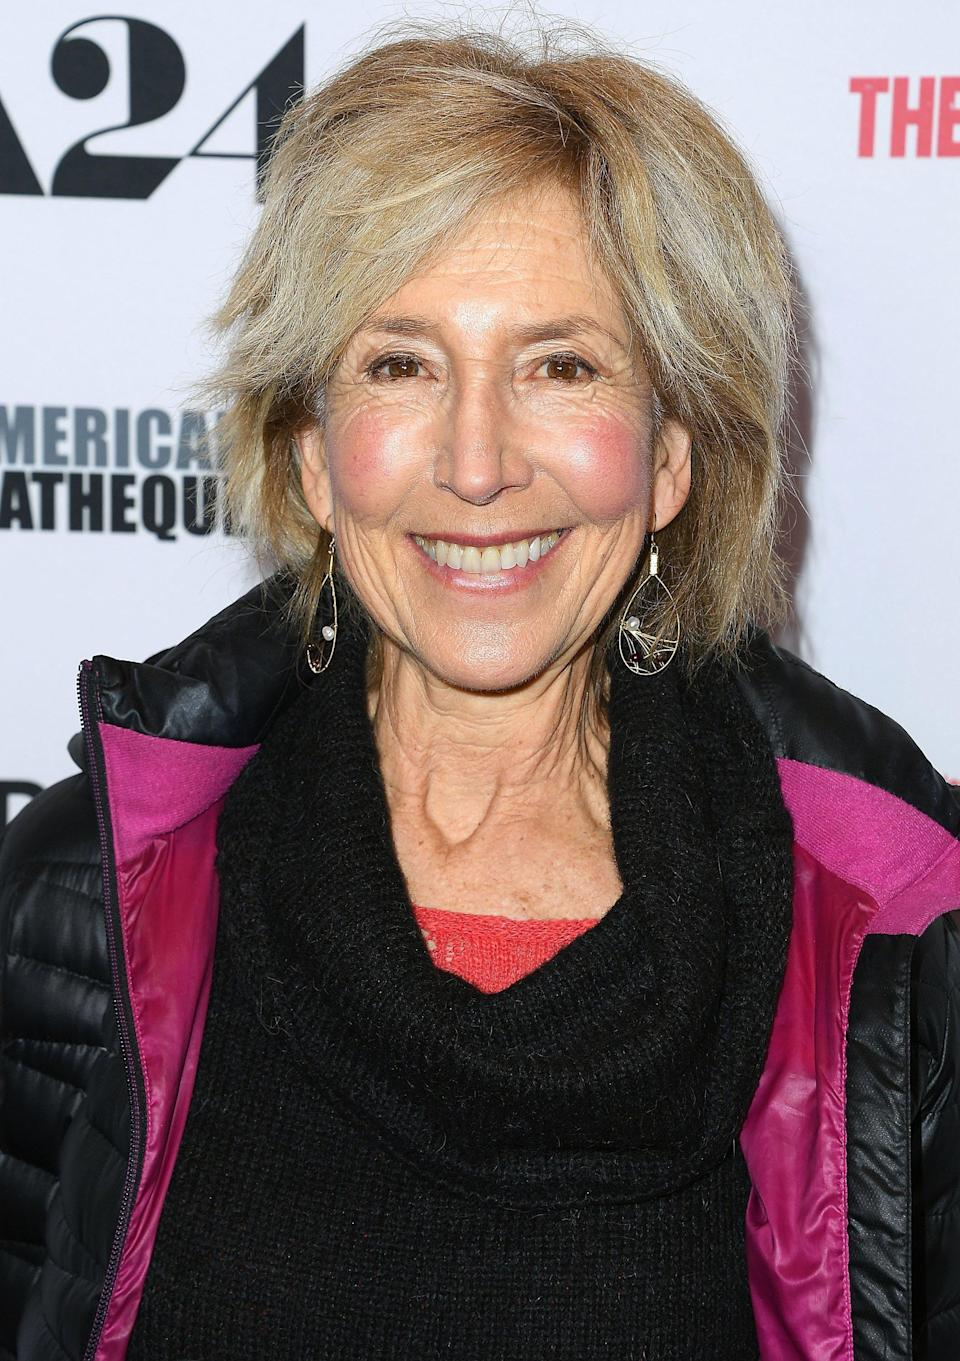 <p>Shaye, a well-known scream queen, starred in various films after bringing us Magda in <strong>There's Something About Mary</strong>. She's had roles in films like <strong>Stuck on You</strong>, <strong>A Cinderella Story</strong>, <strong>Cellular</strong>, the Insidious films, and the Ouija series. </p>